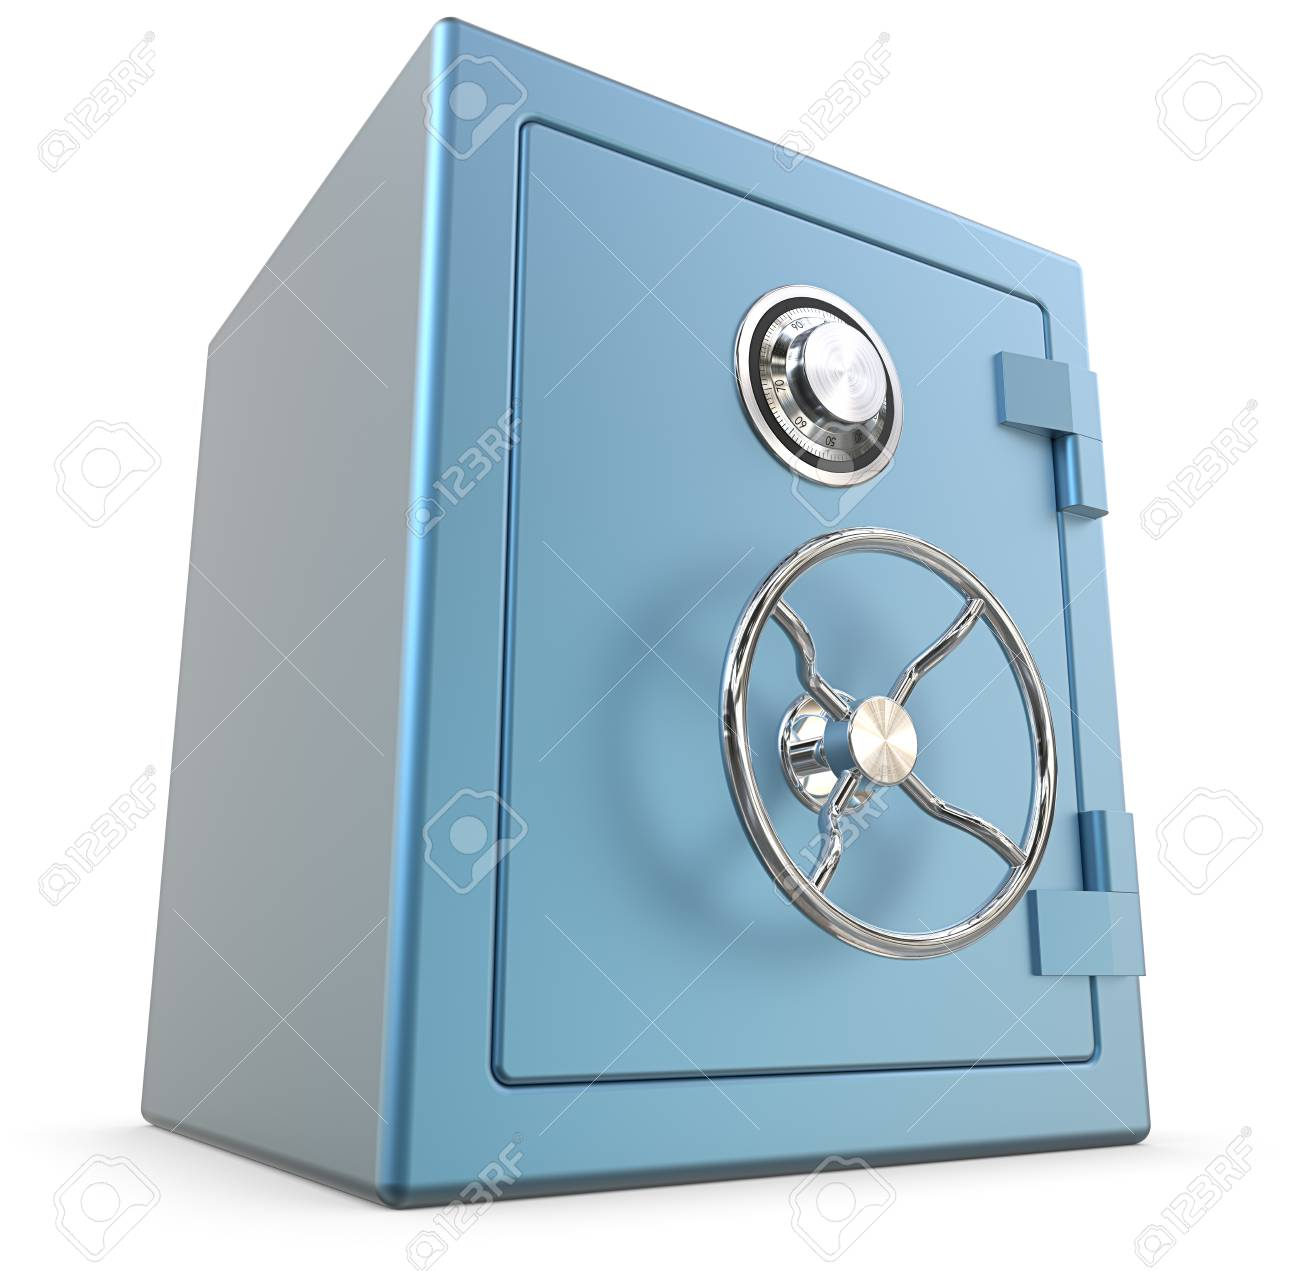 Sicher Safe Stock Photo